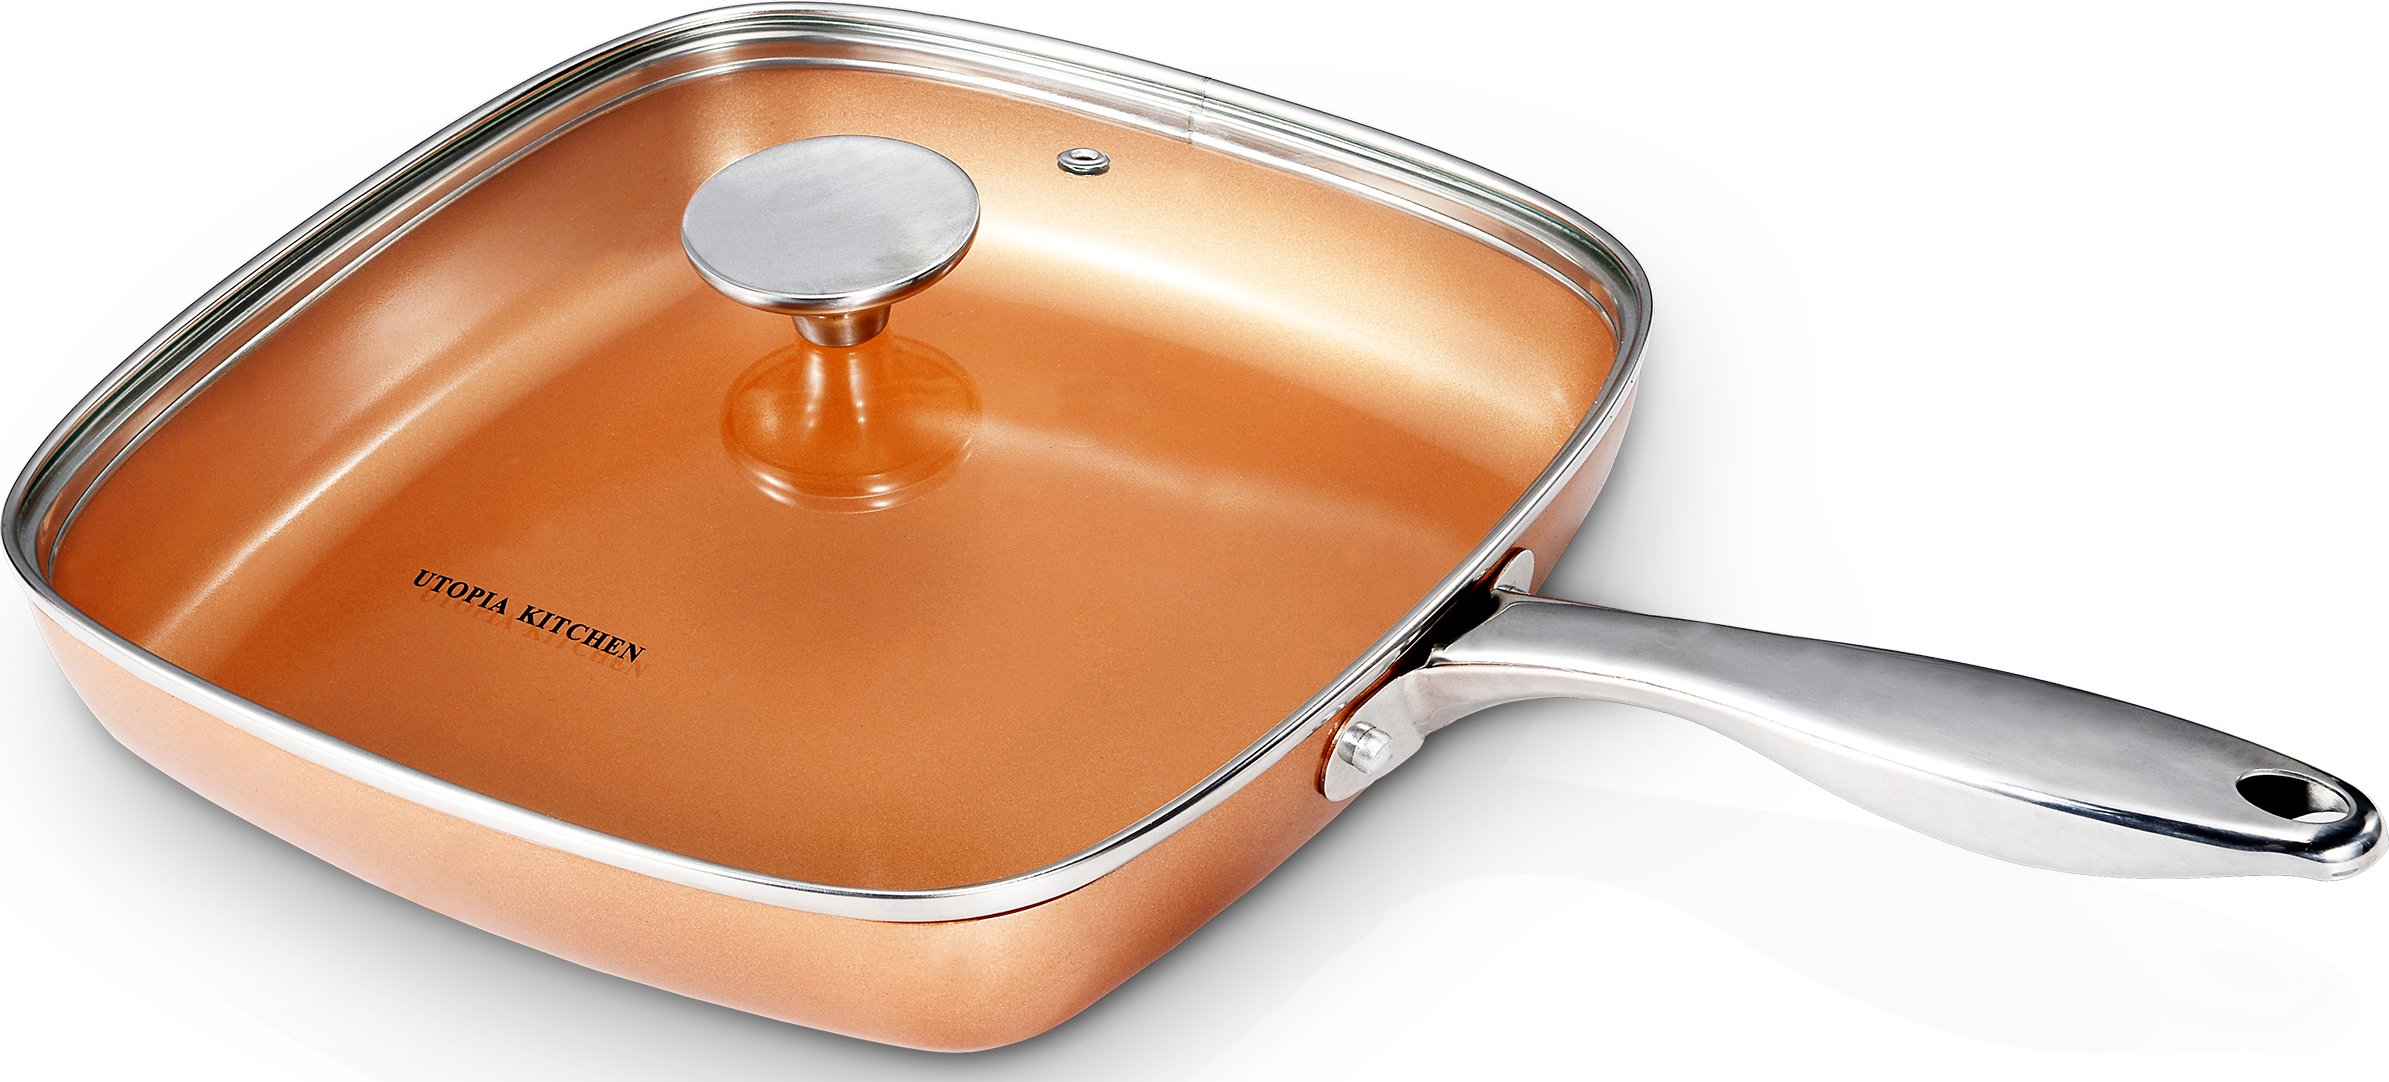 Utopia Kitchen Induction Bottom 9.5 Inches Copper Nonstick Square Frying Pan with Glass Lid and Stainless Steel Handle - Multipurpose Use for Home Kitchen and Restaurant by Utopia Kitchen (Image #3)